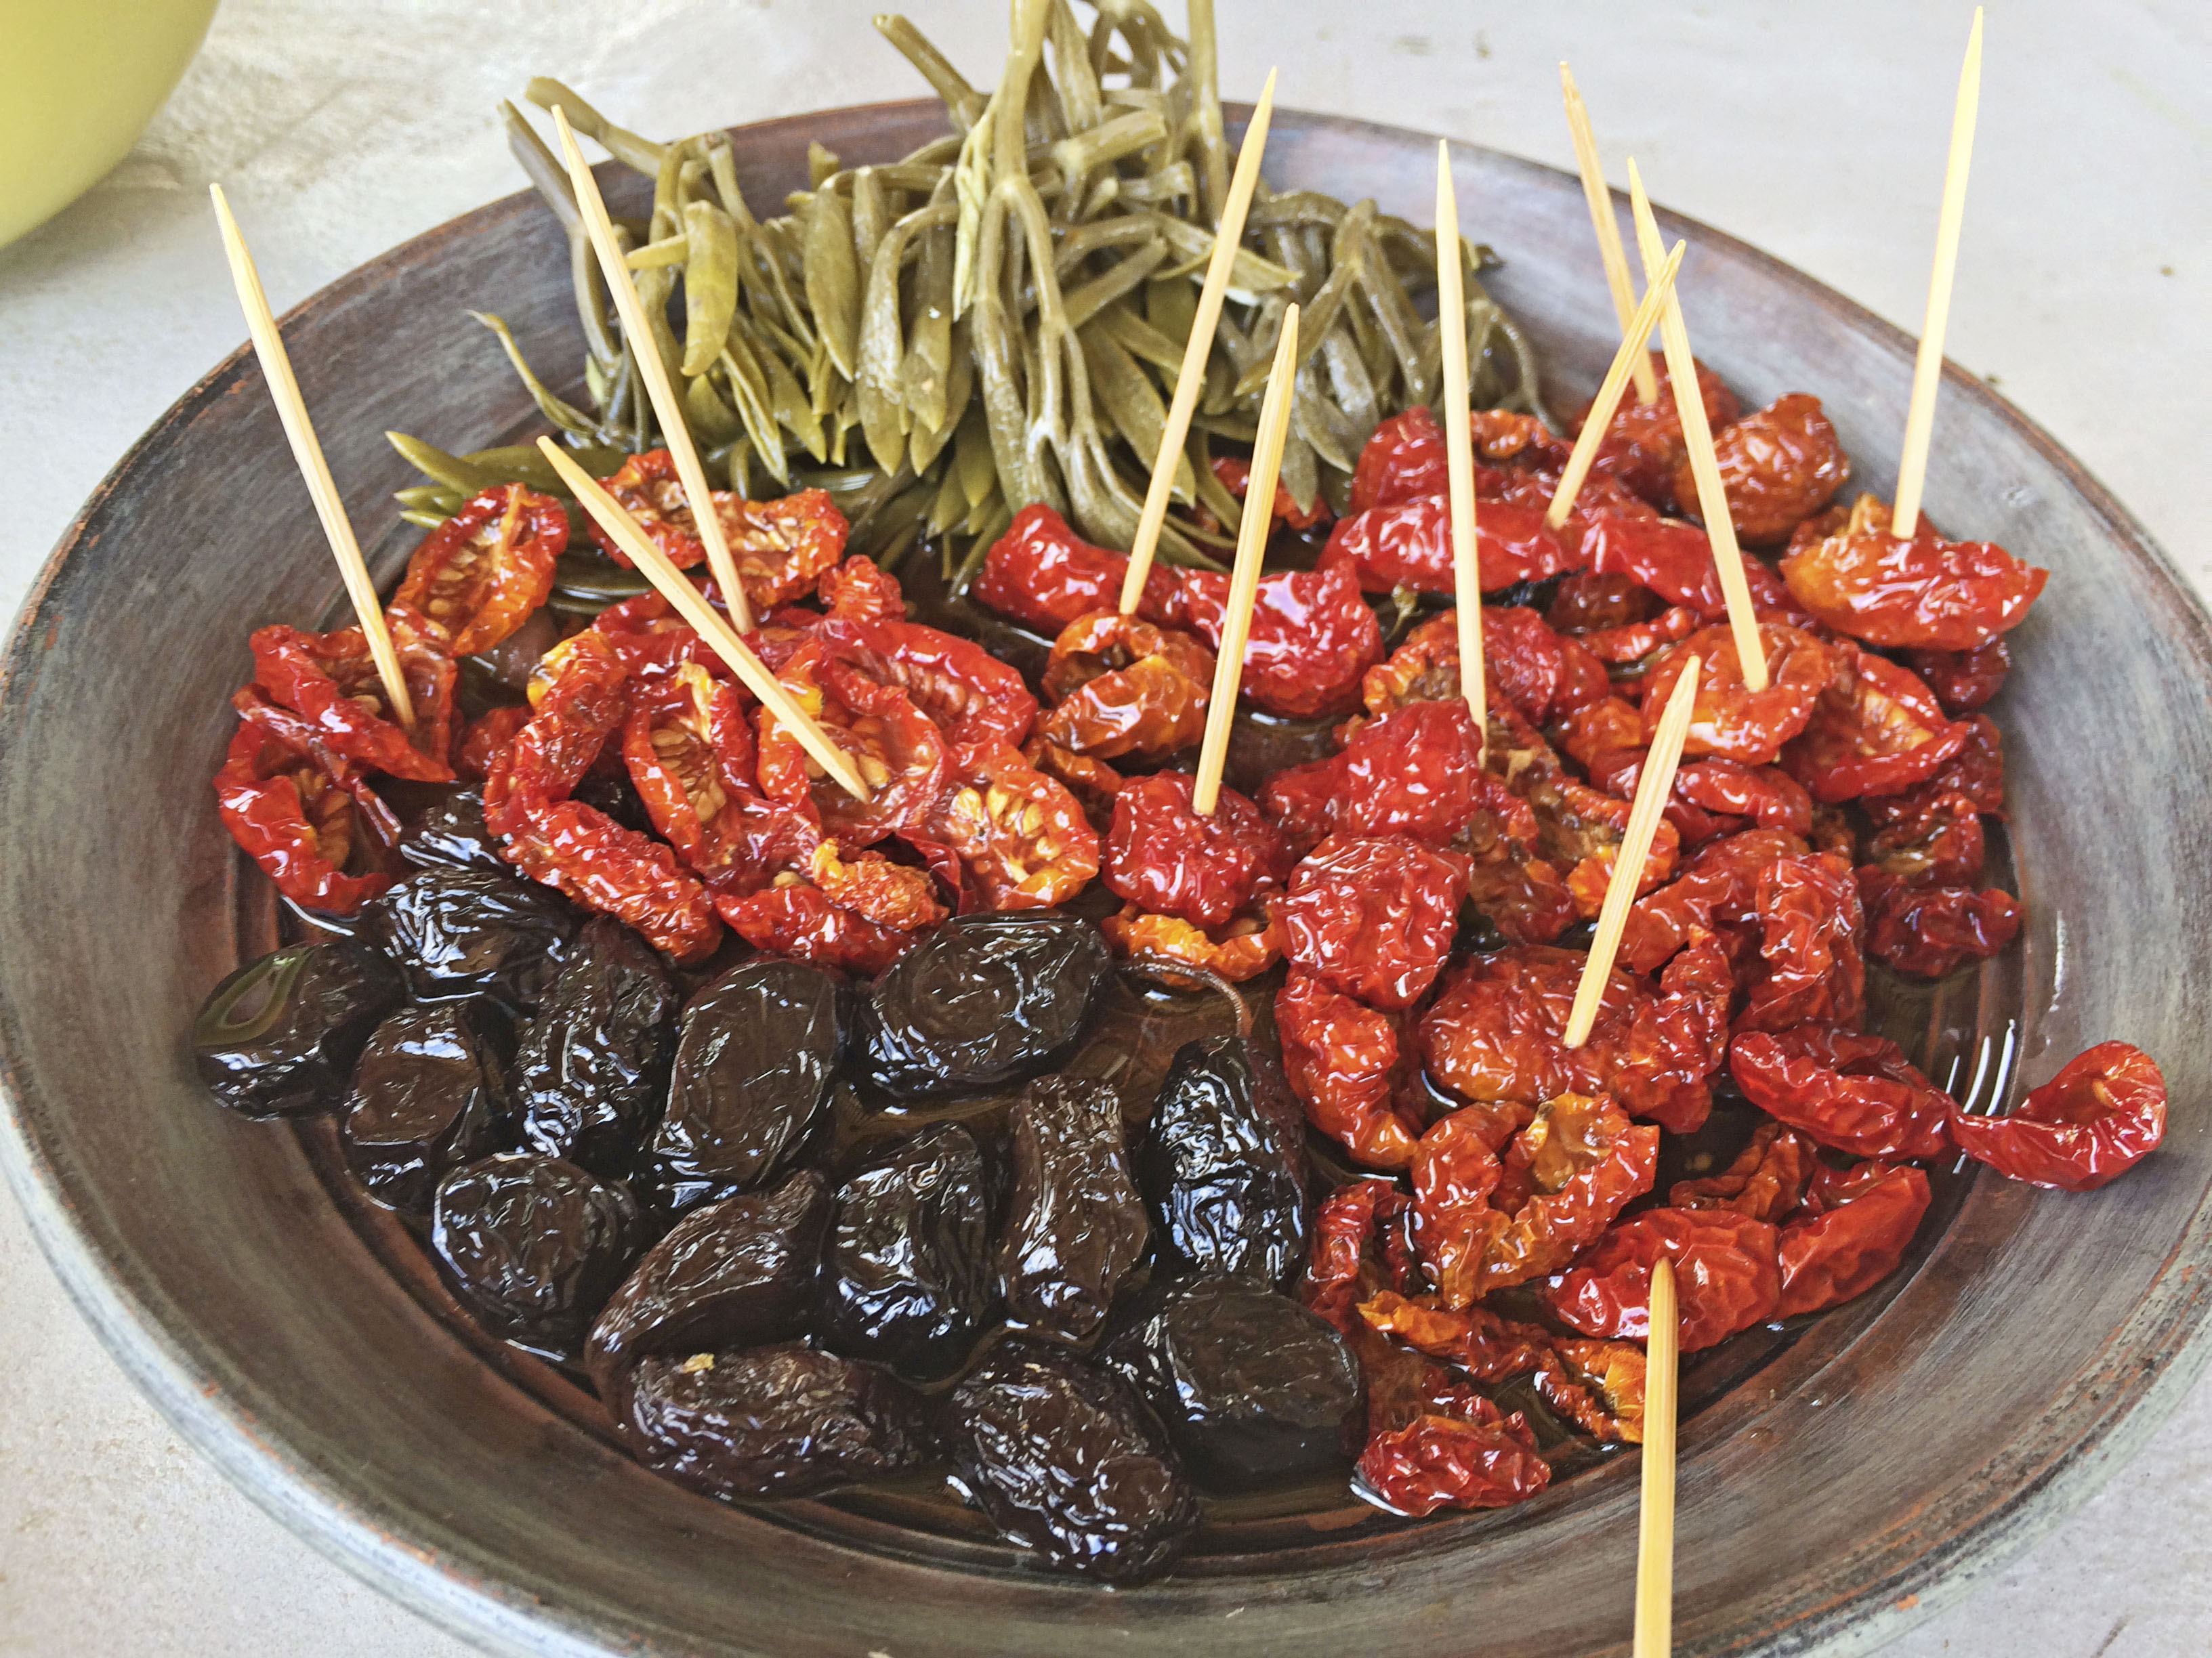 Olives and sundried tomatoes at hand picked Greece